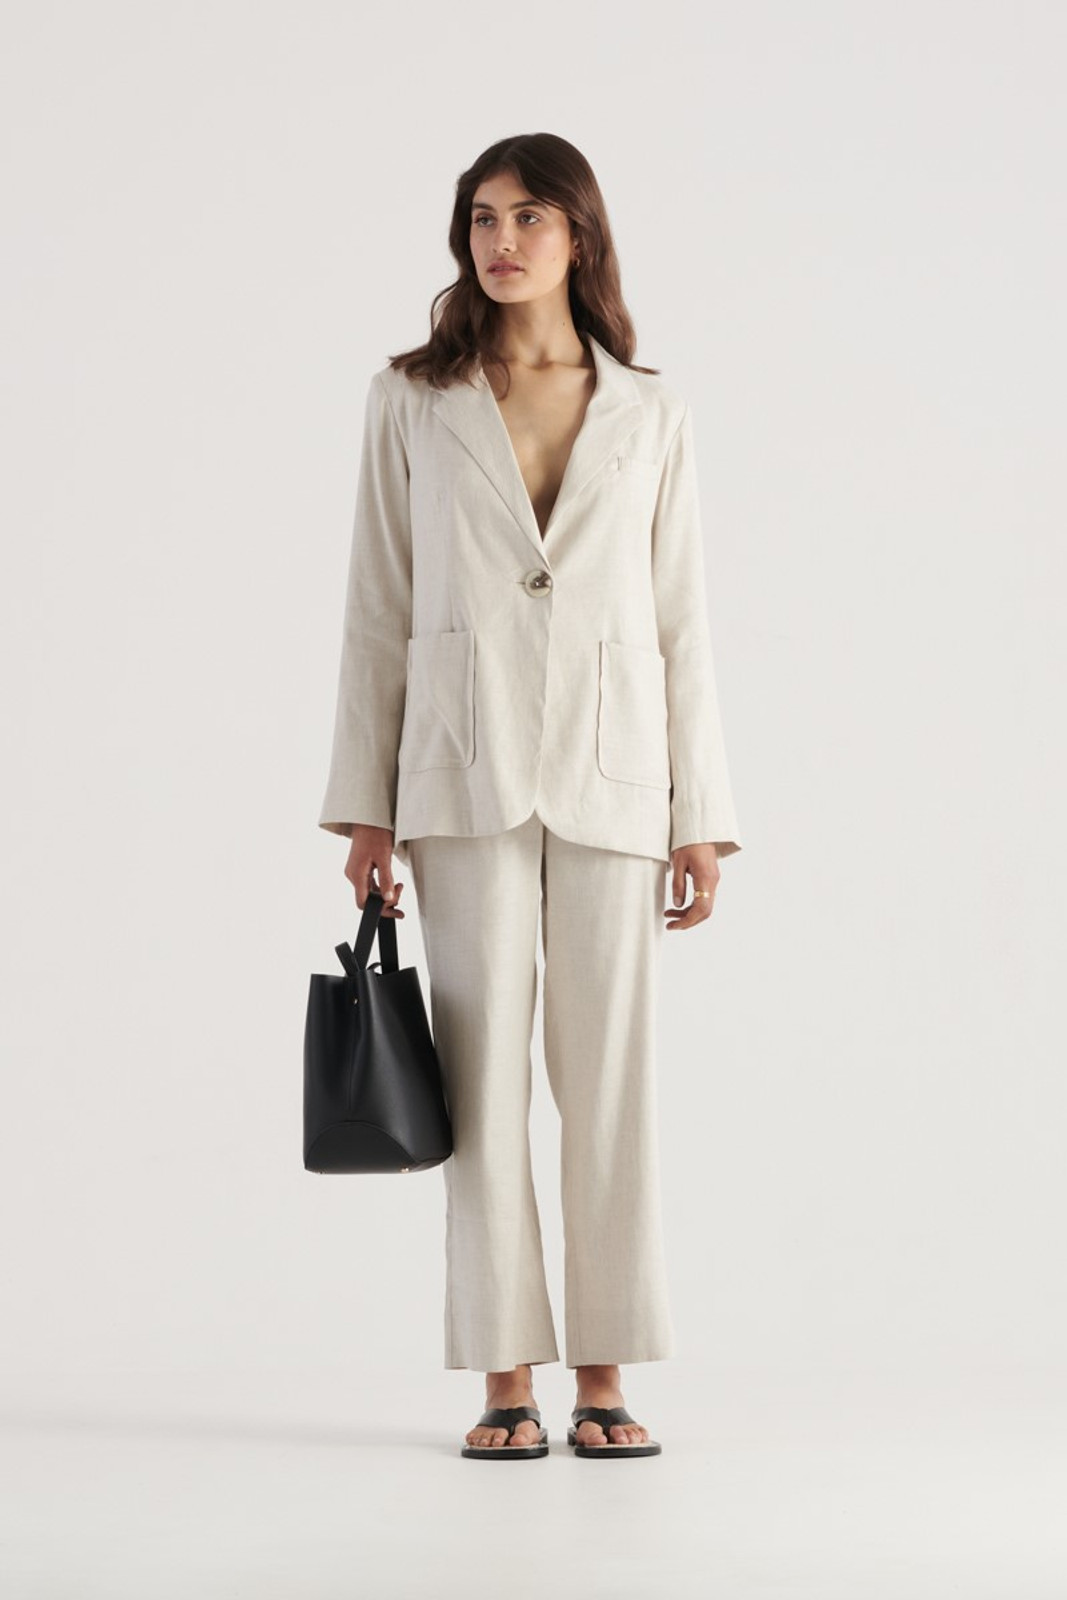 Elka Collective WOMENS Neutrals Cate Jacket 3